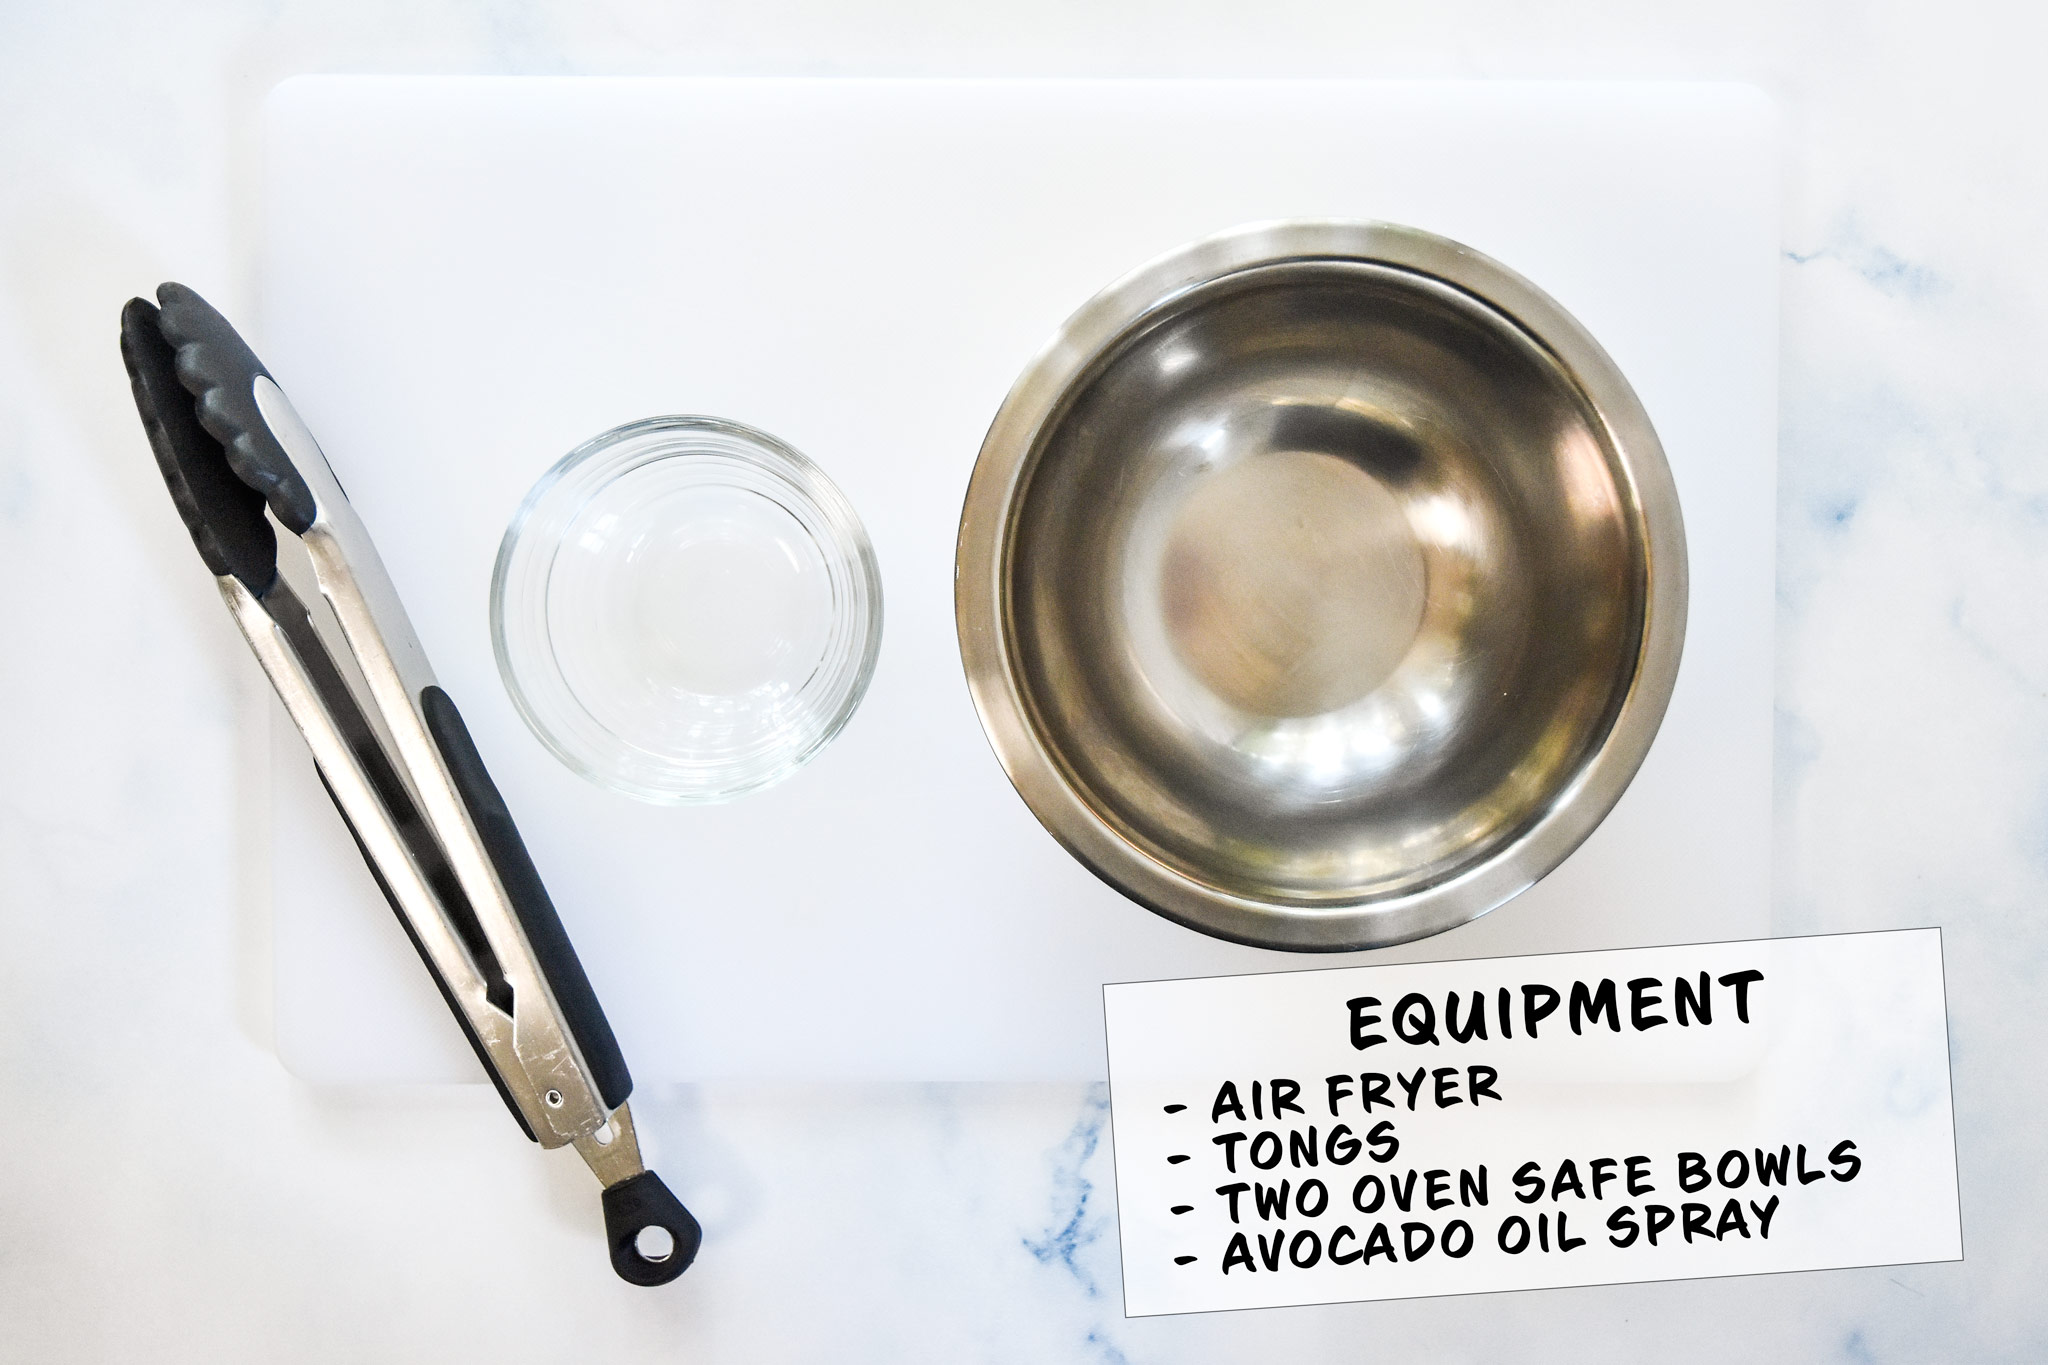 equipment for making air fryer flour tortilla bowls including tongs and oven safe bowls